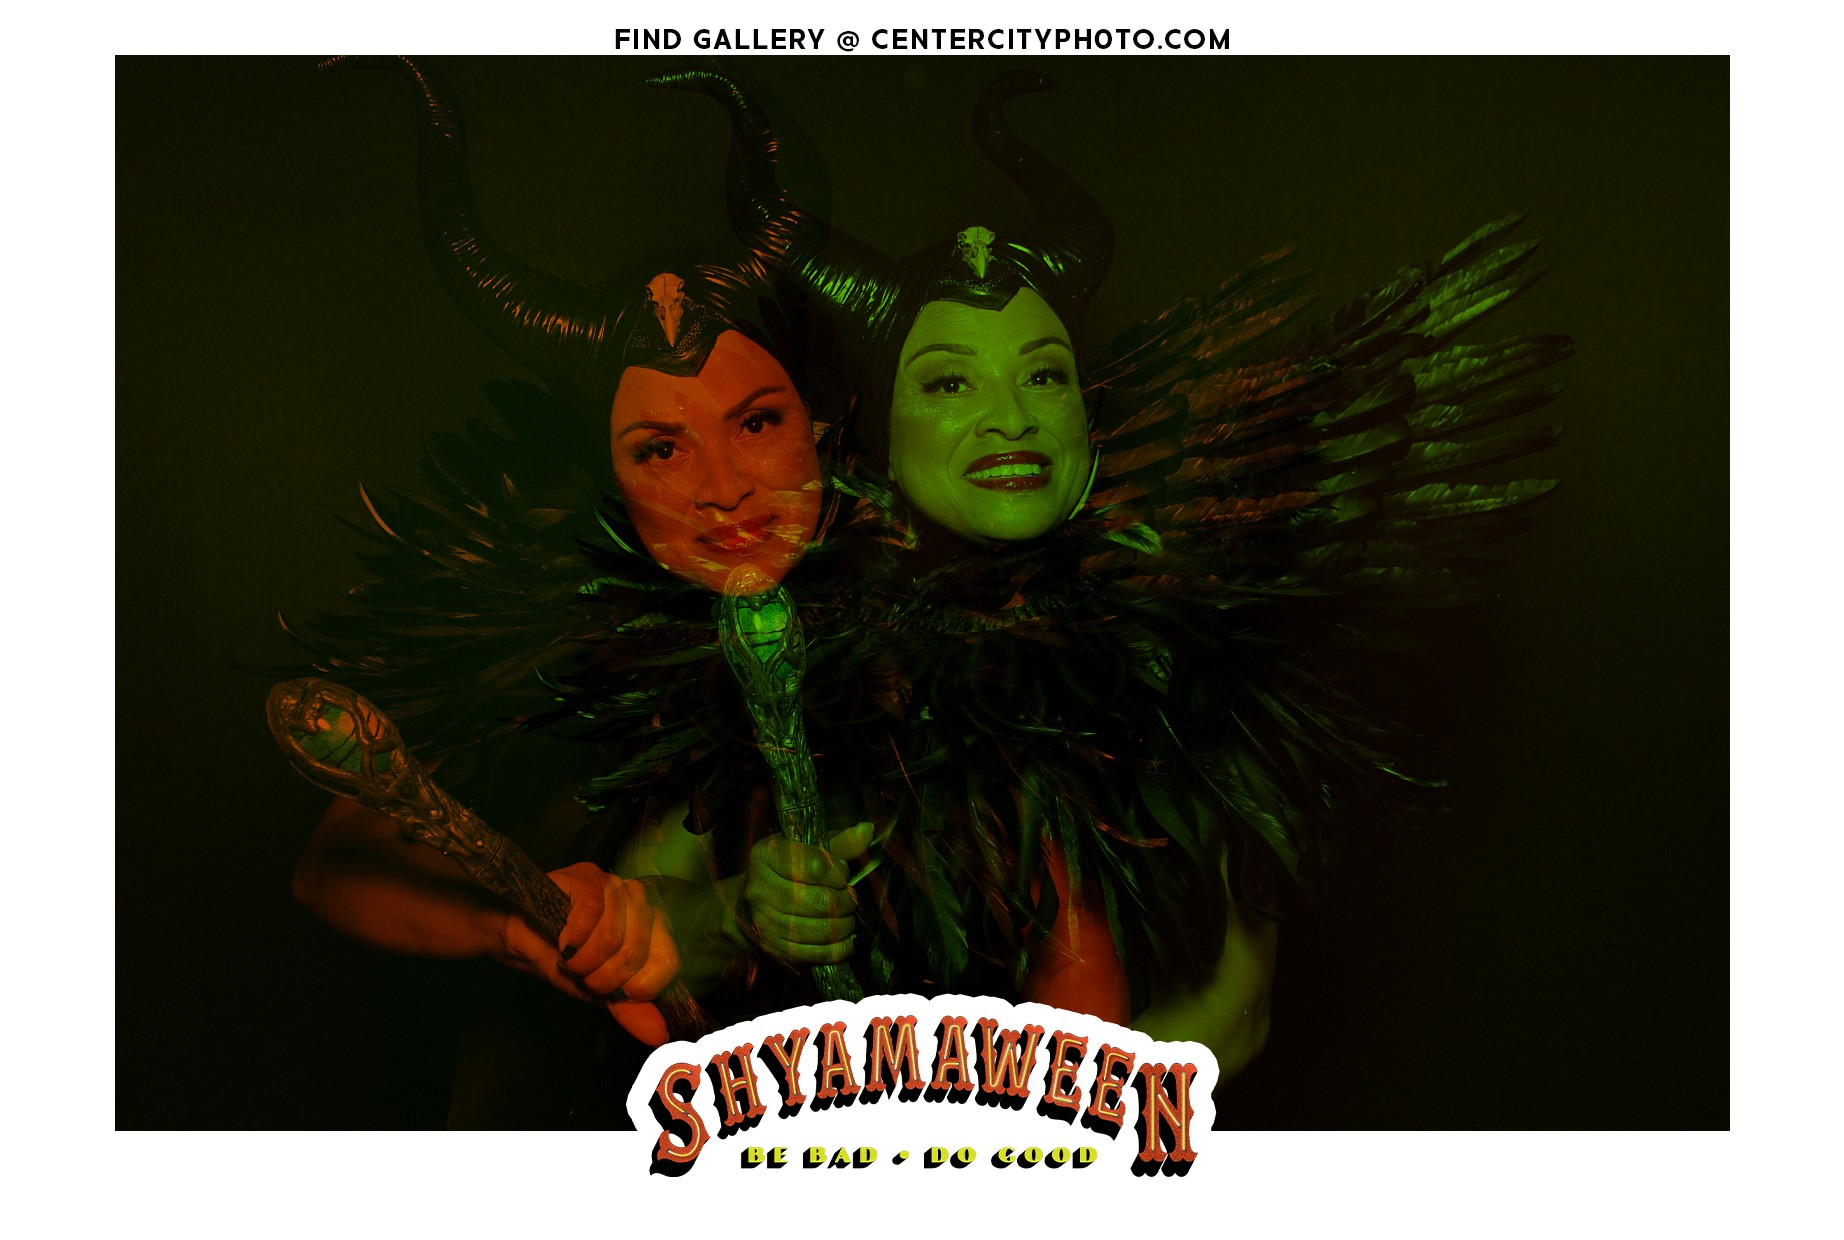 Double-exposure-photo-booth-2